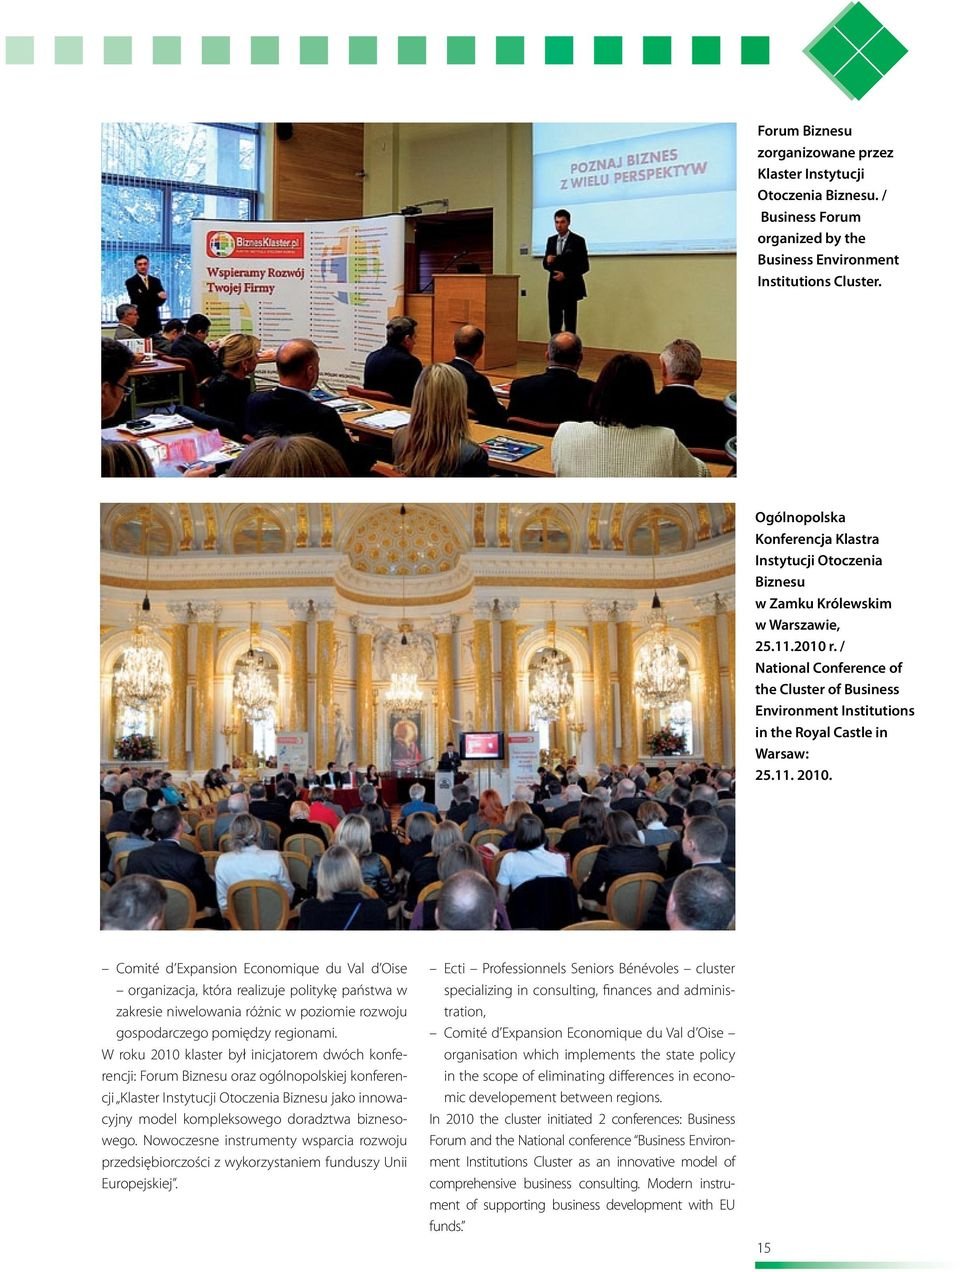 / National Conference of the Cluster of Business Environment Institutions in the Royal Castle in Warsaw: 25.11. 2010.